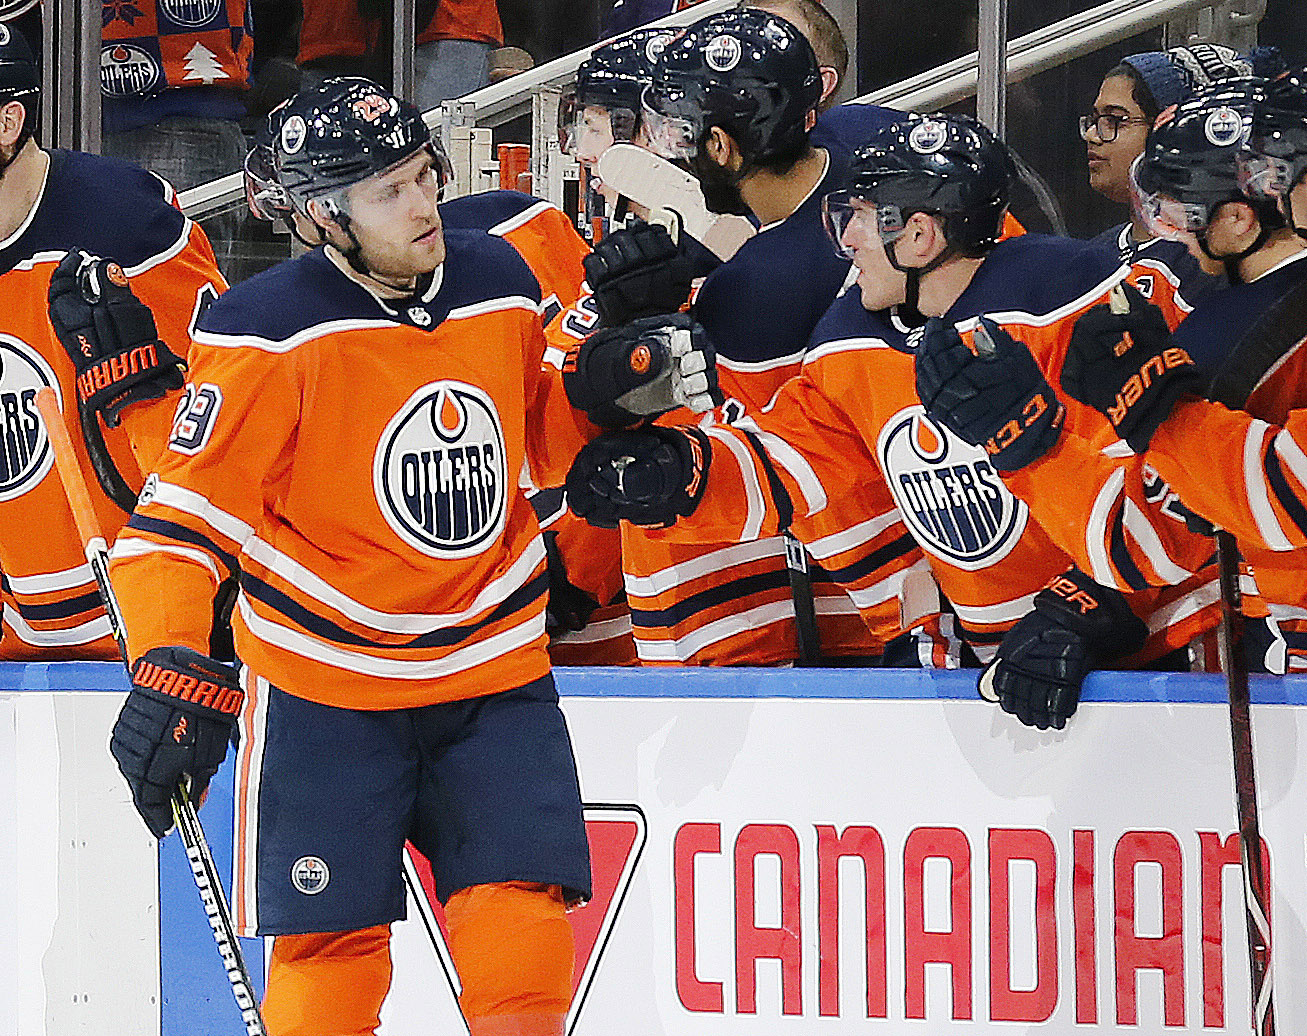 How The Fix The Edmonton Oilers: The Roster, Part 1